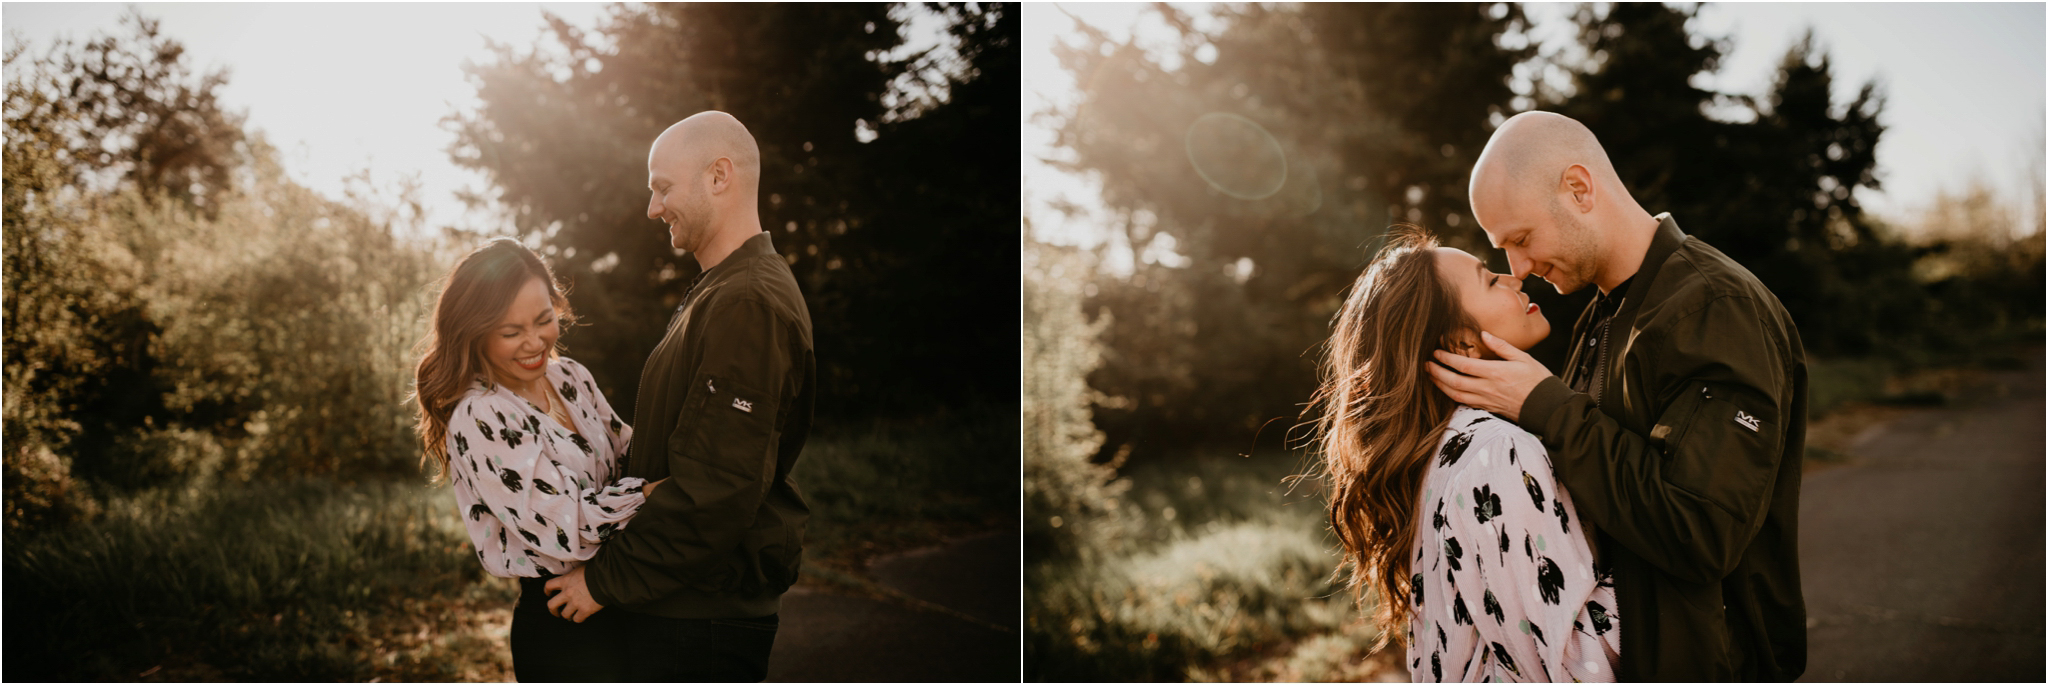 thuy-and-andrew-discovery-park-seattle-beach-engagement-session-002.jpg